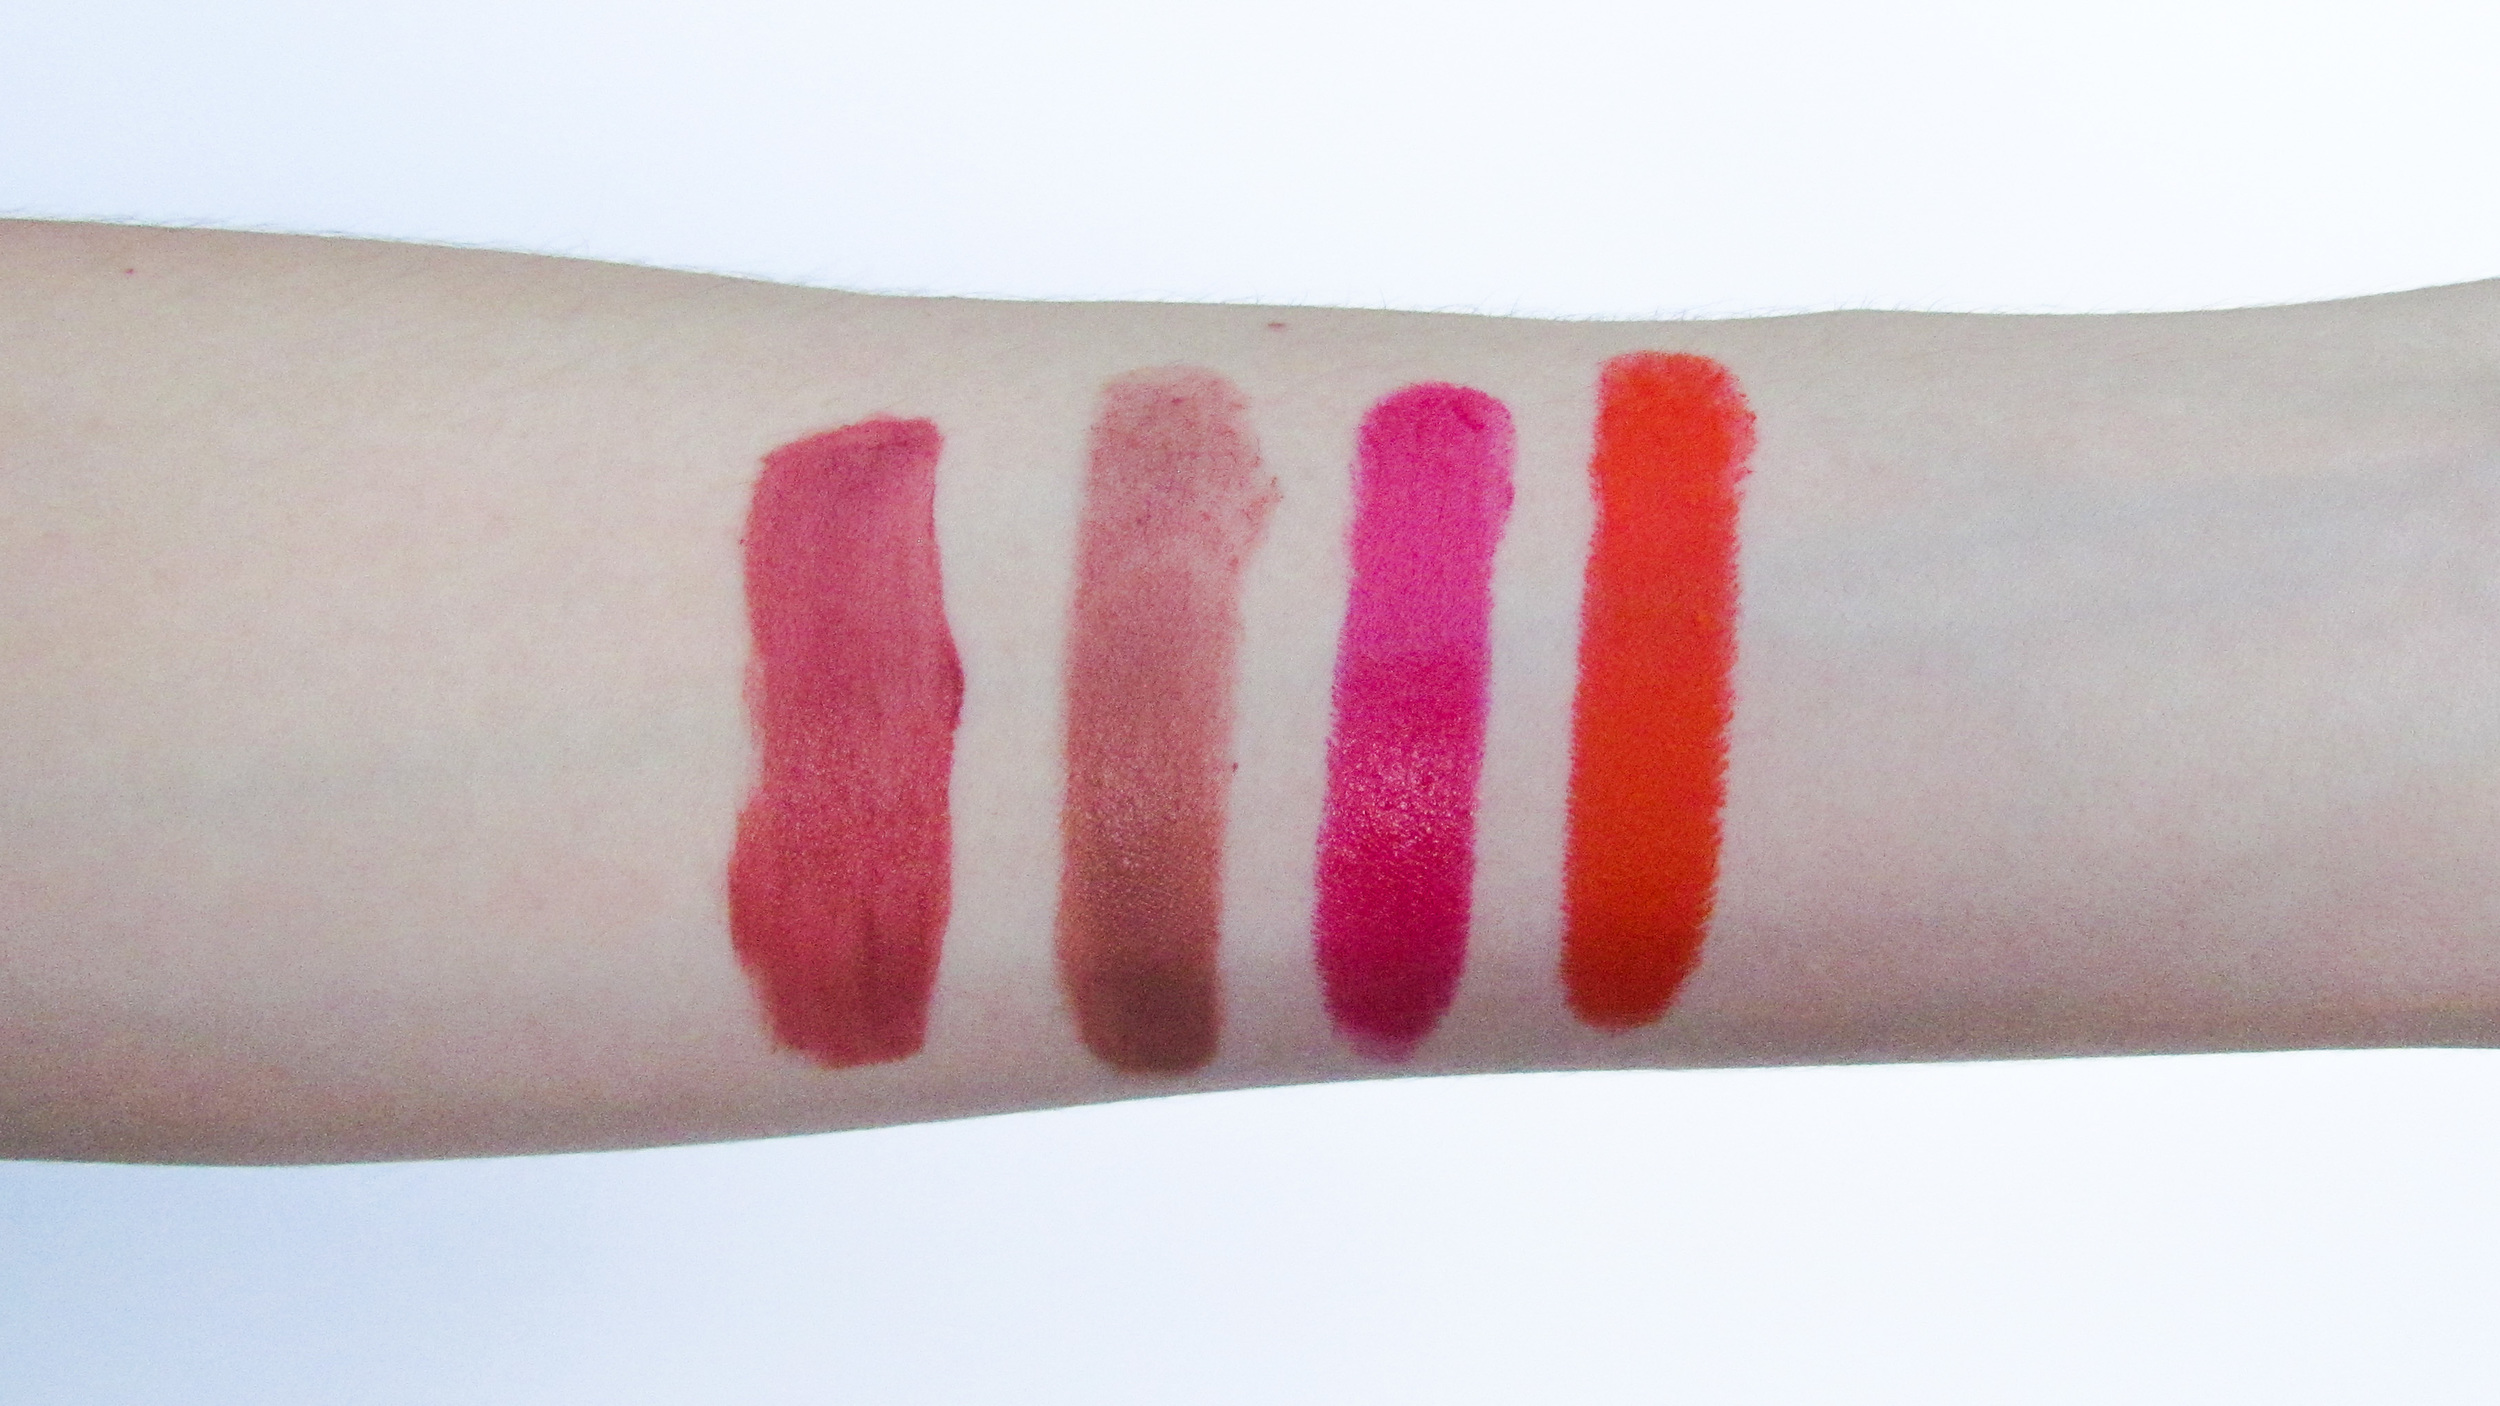 Left to Right: NYX, Charlotte Tilbury, Clinique, Kat Von D